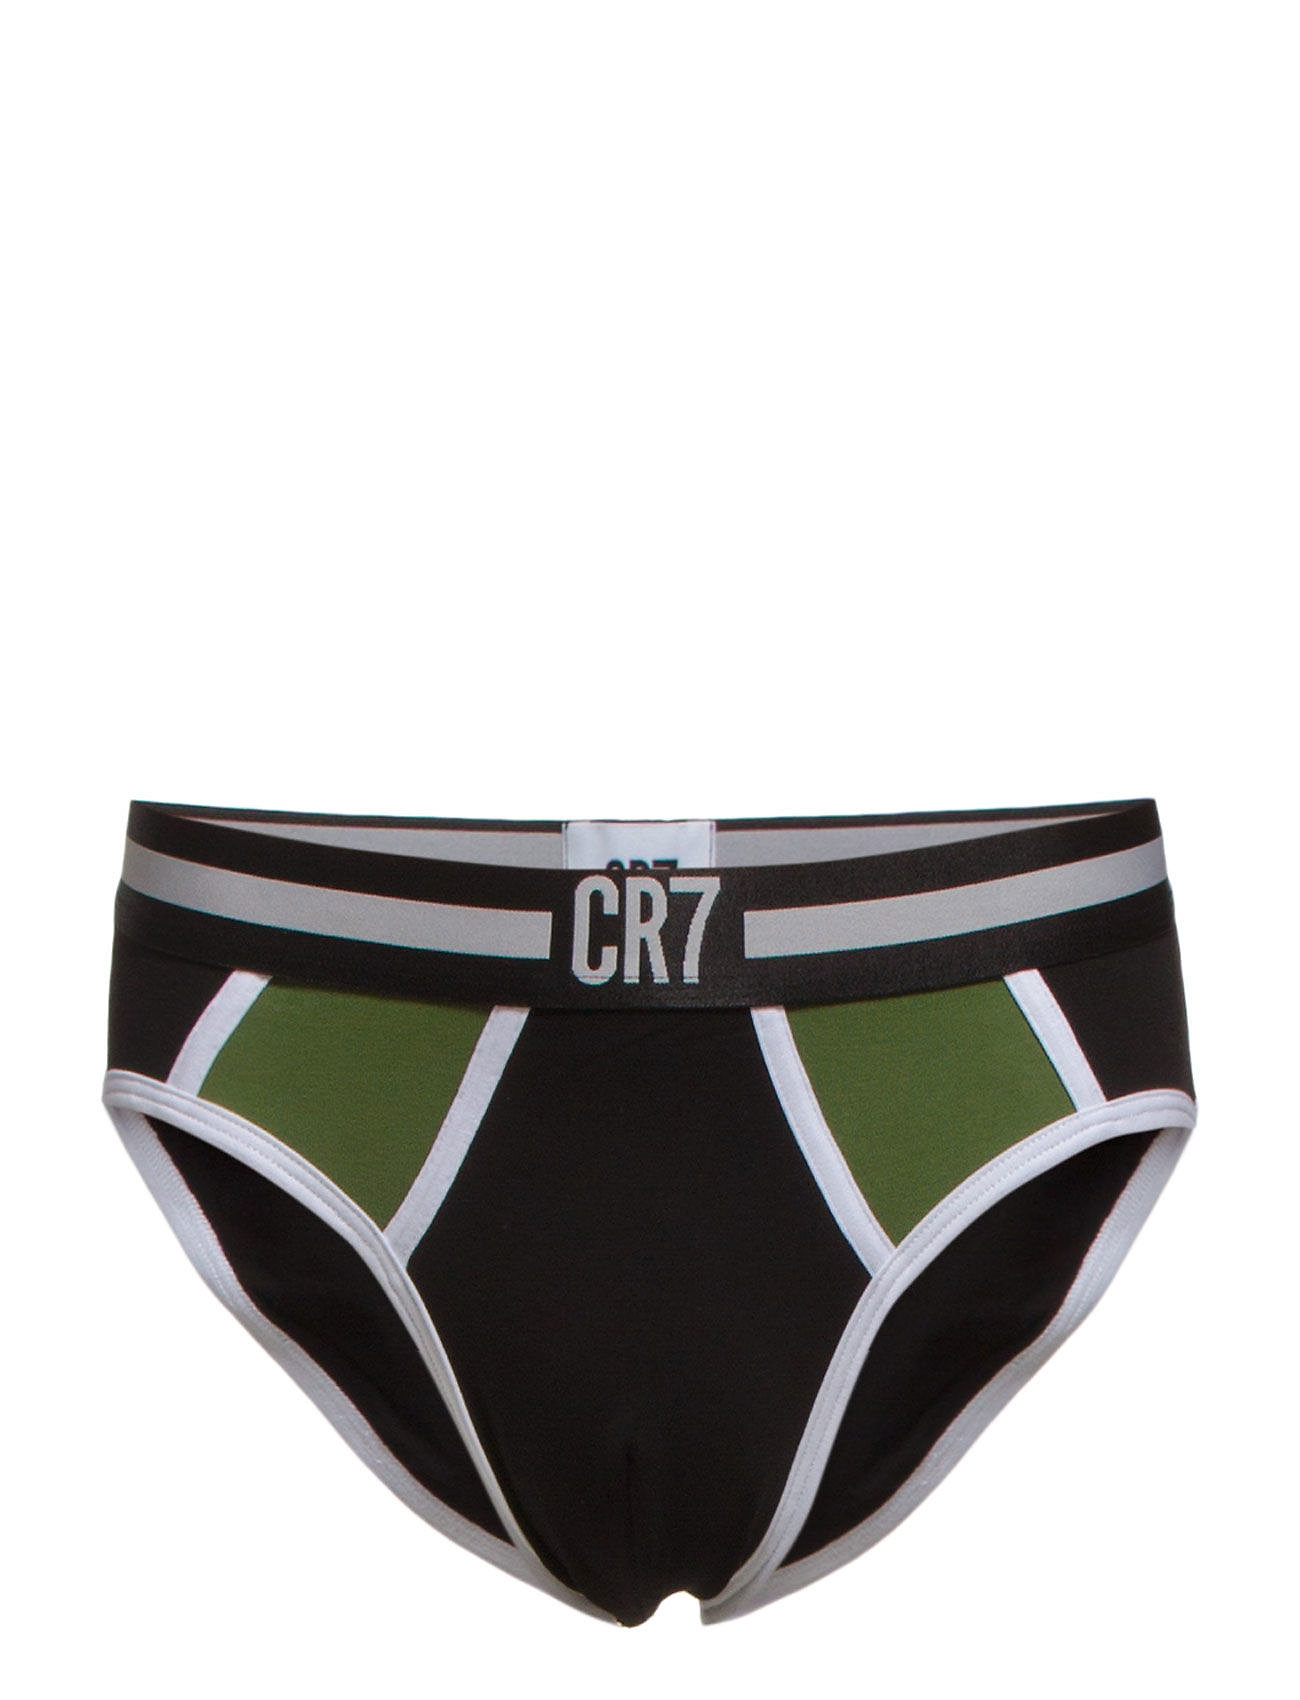 CR7 Brief